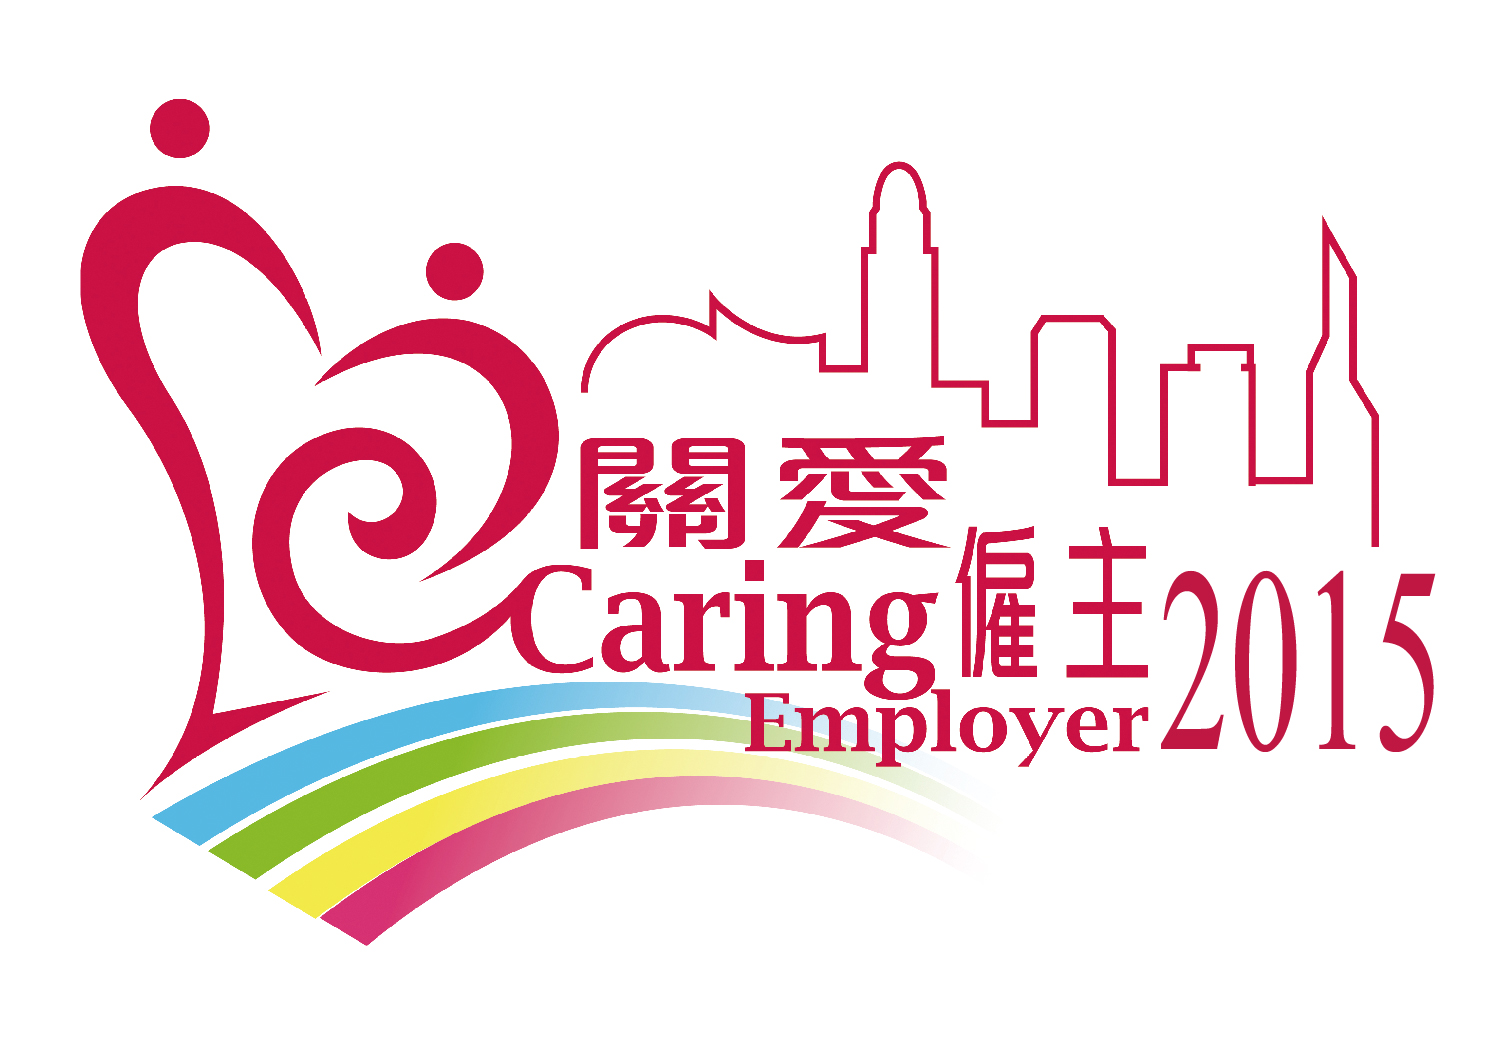 Caring Employer 2015